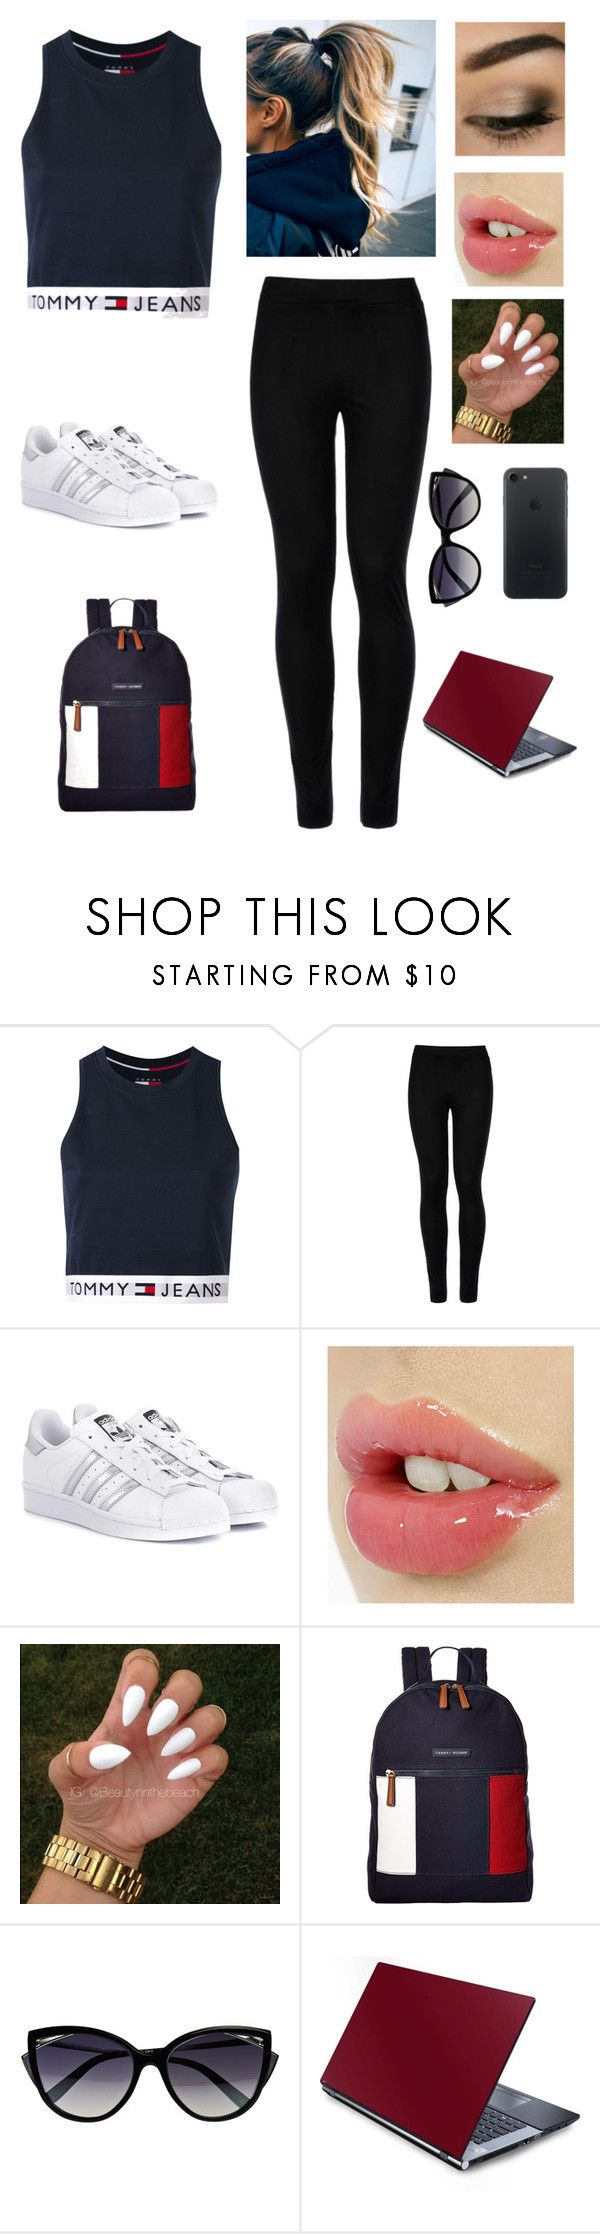 """""""Happy labor day weekend!!!"""" by rusher-11 ❤ liked on Polyvore featuring Tommy Hilfiger, Wolford, adidas Originals and La Perla"""